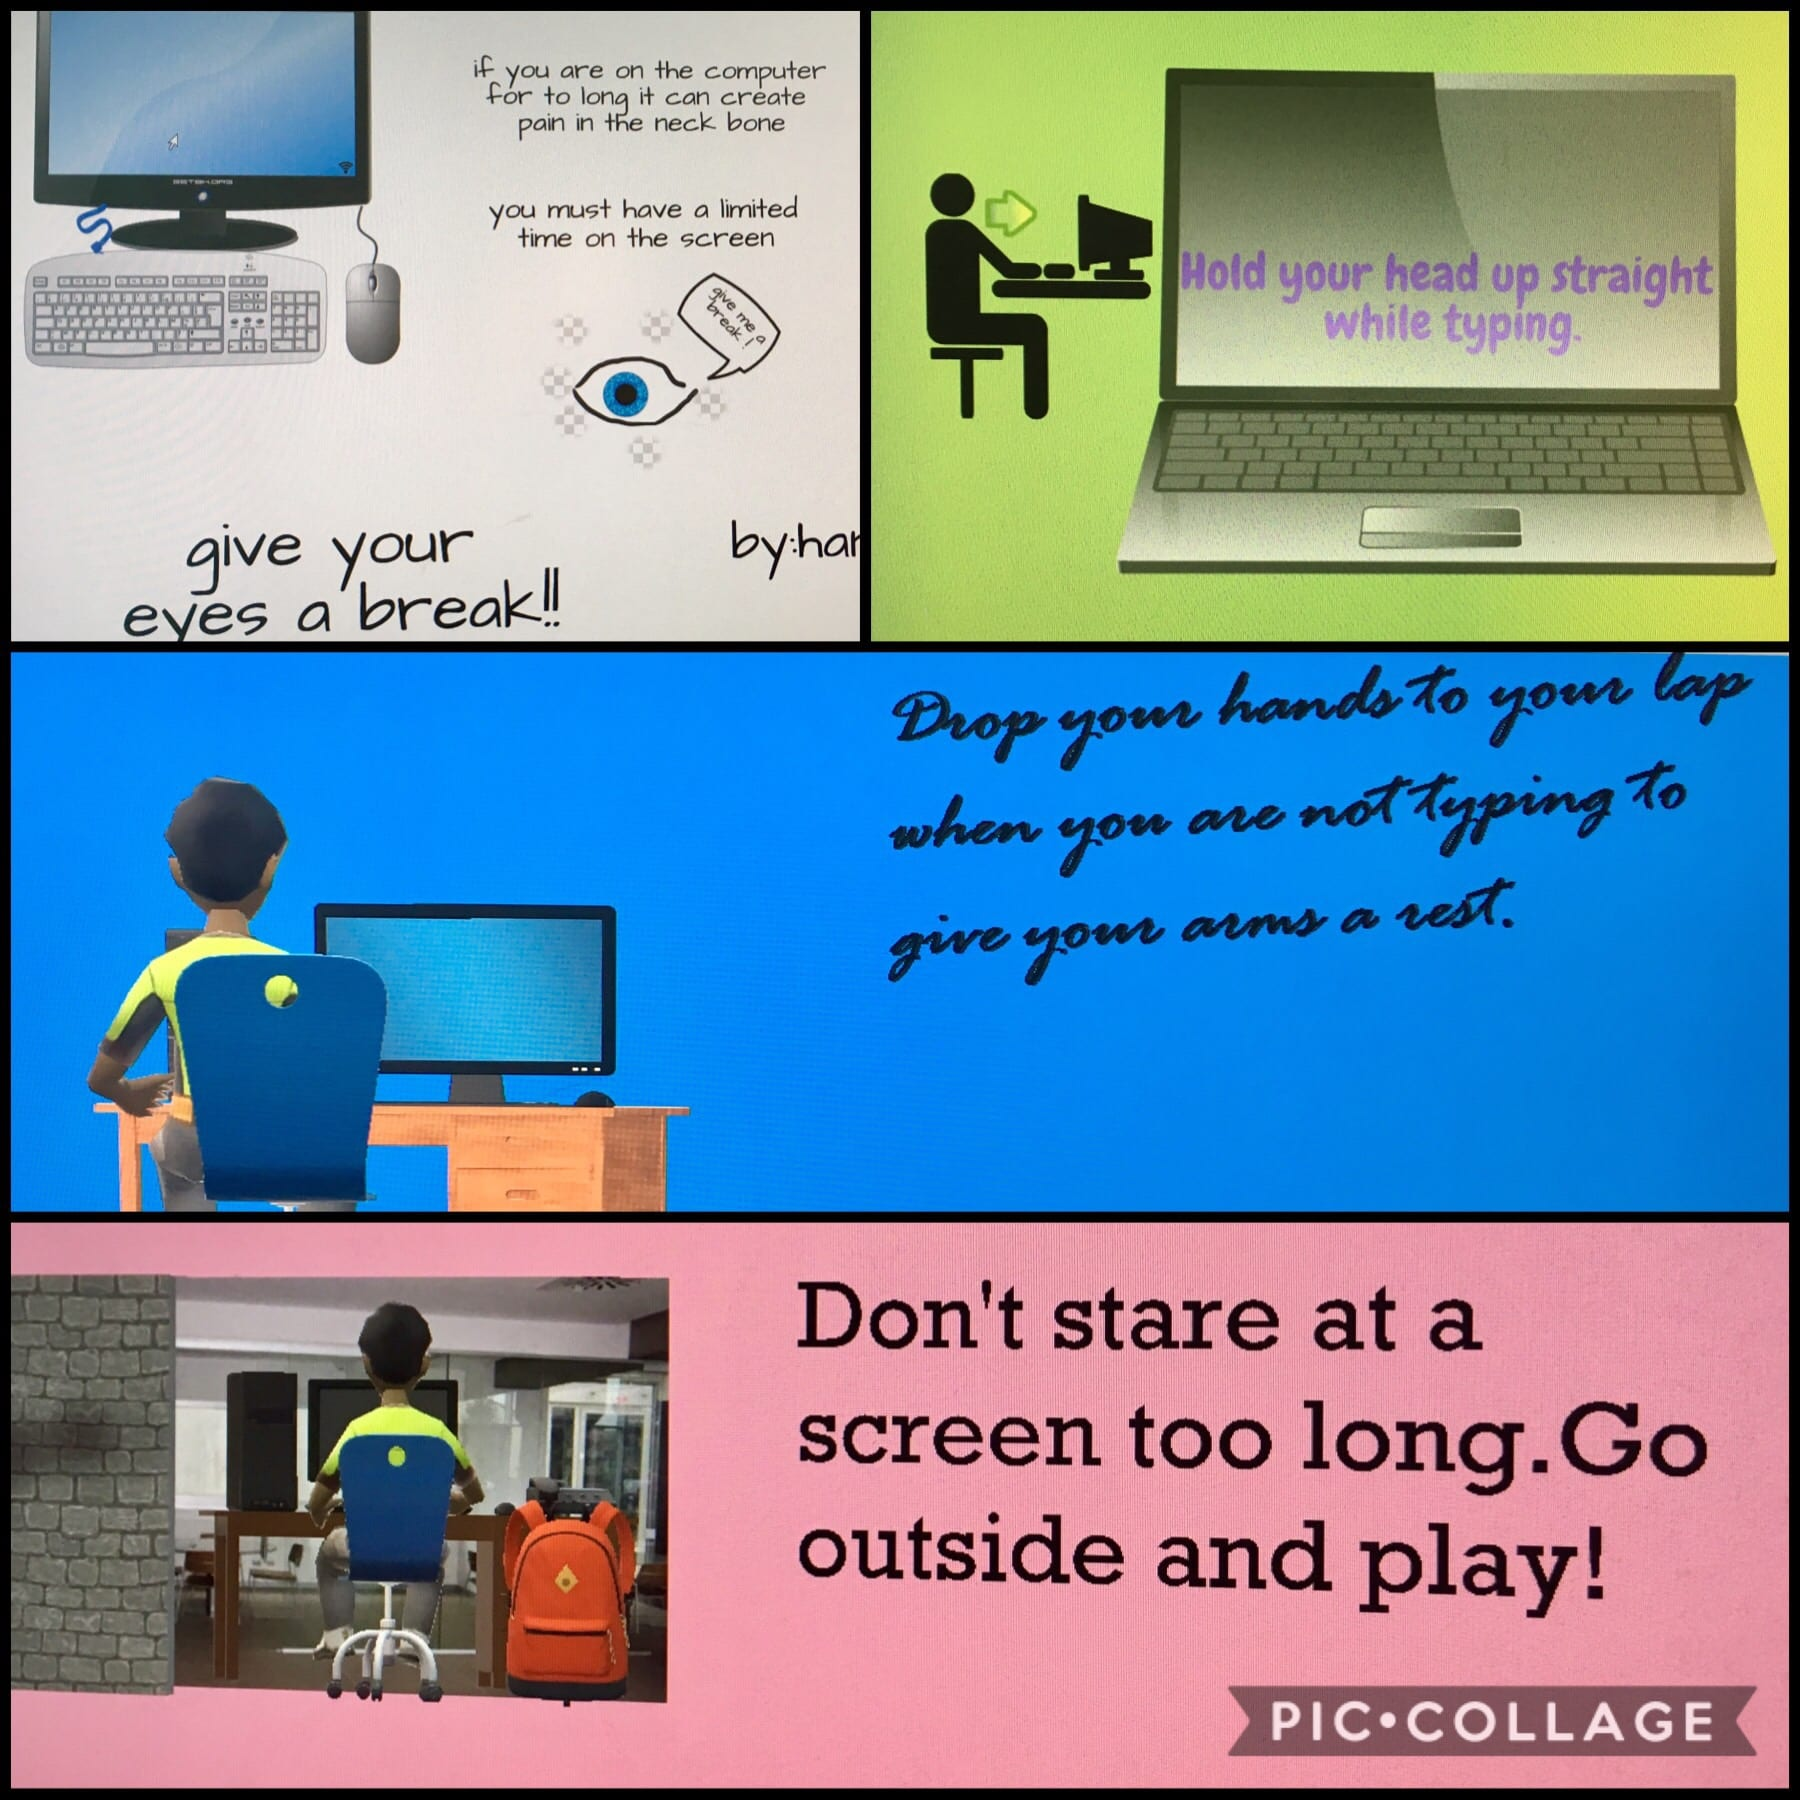 Take Breaks and Be Active! An Important Digital Message for All Students